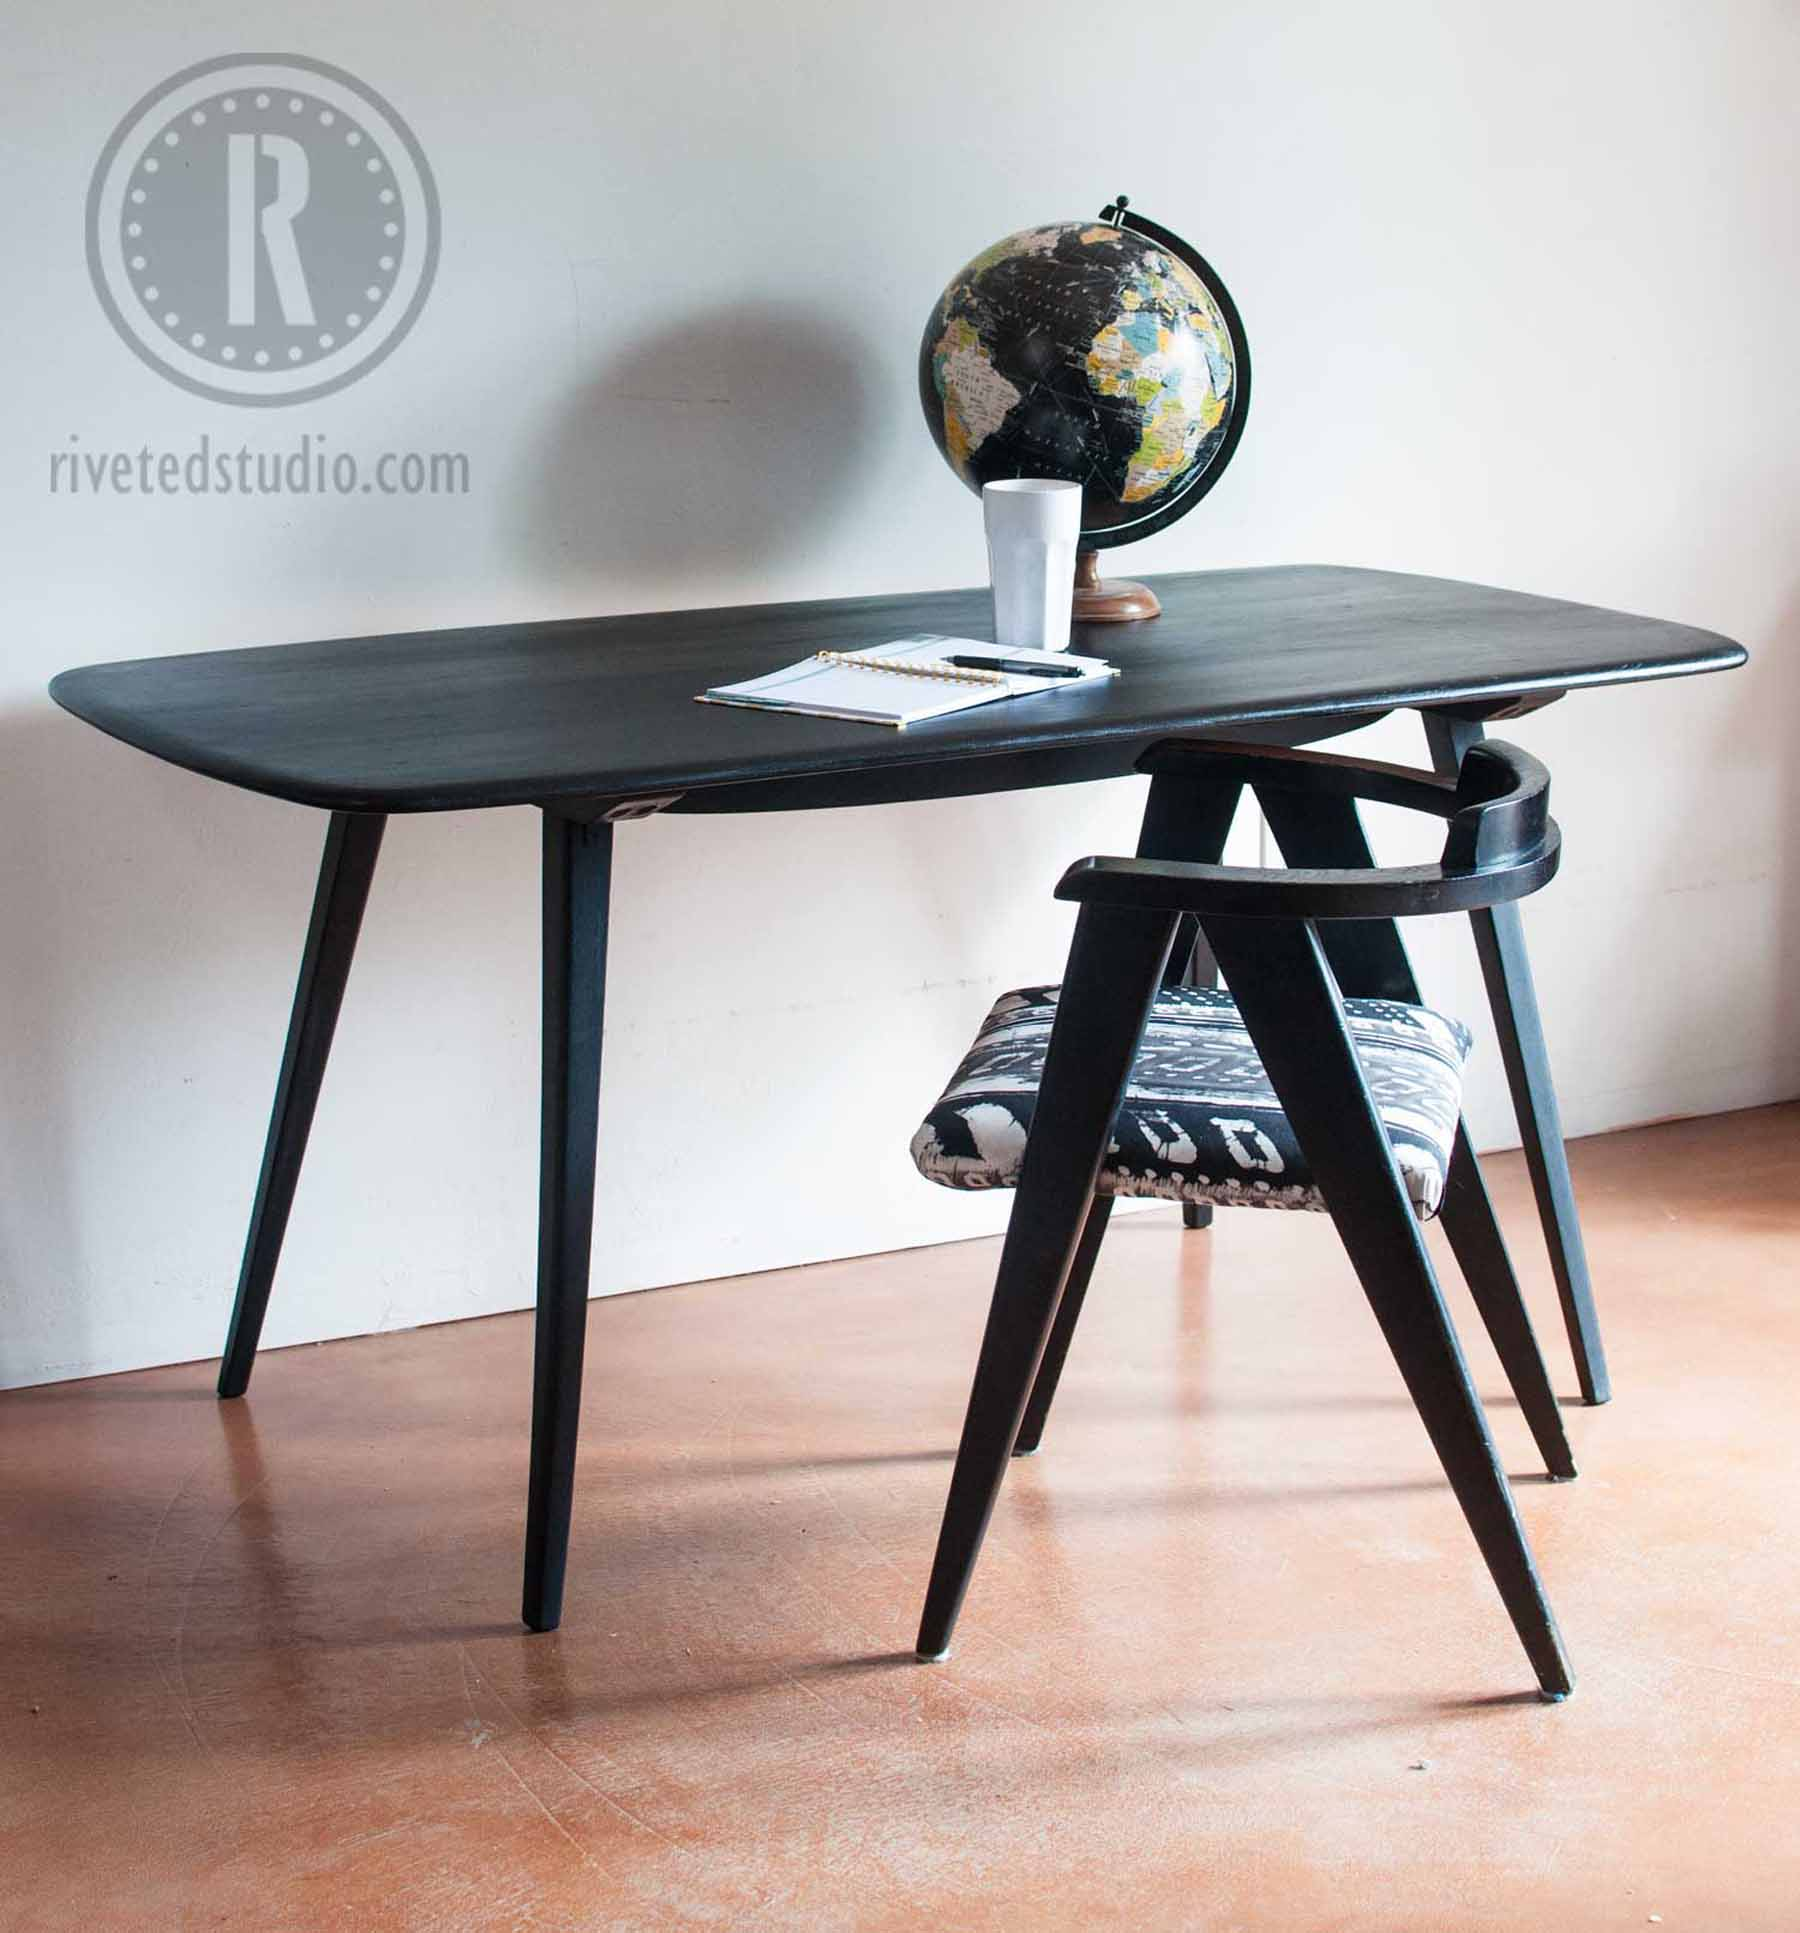 MCM Surfboard Table with Milk Paint Finish